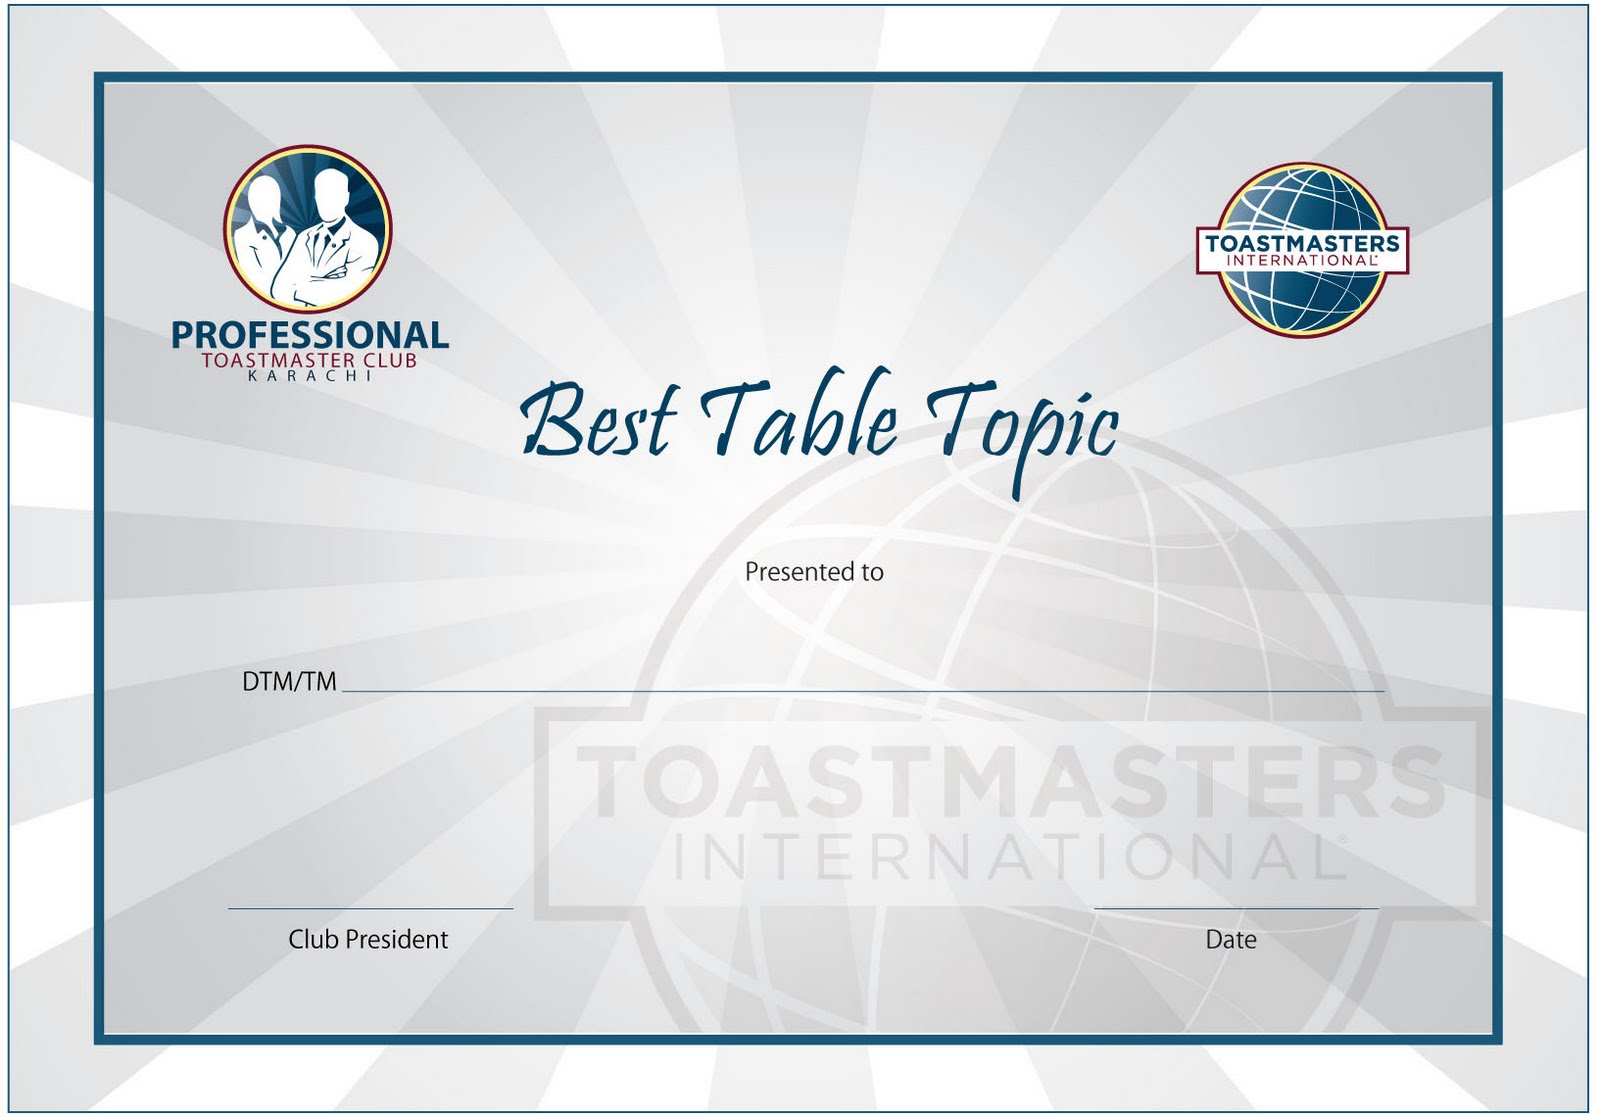 professional toastmasters club karachi our new logo this opportunity was also used to launch our new logo the task of designing our new logo and certificates for the best table topics and best speaker was